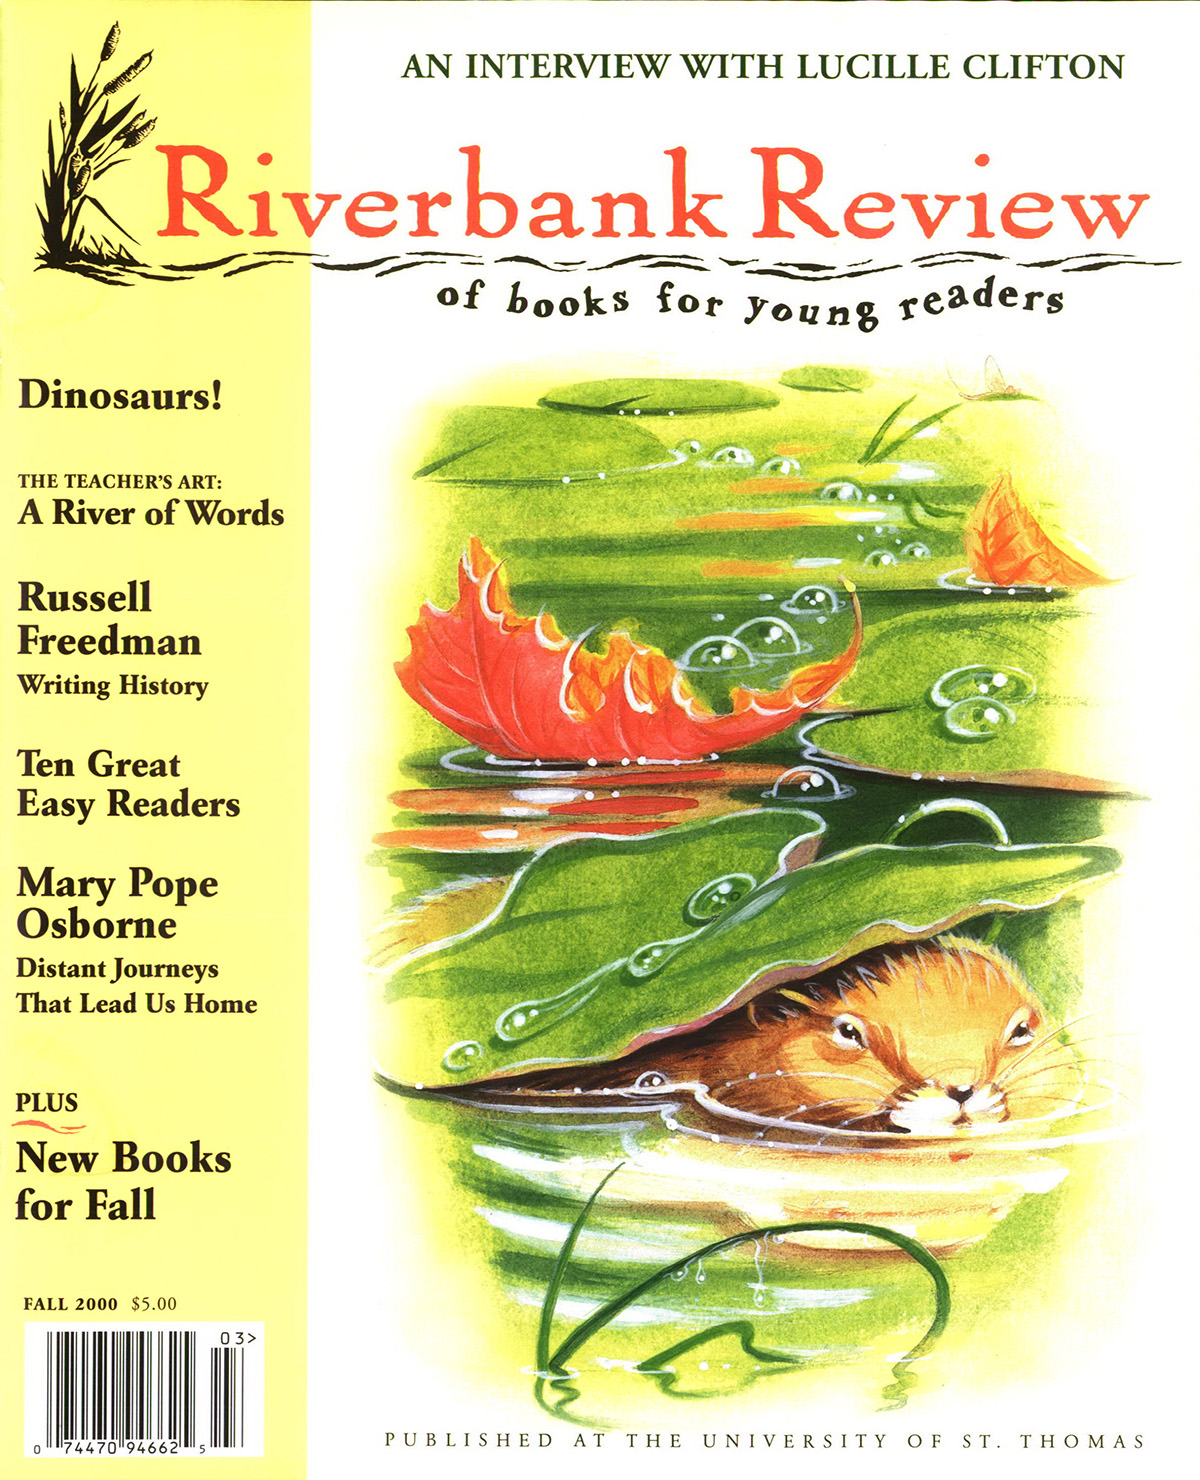 Fall 2000: Jim Arnosky cover